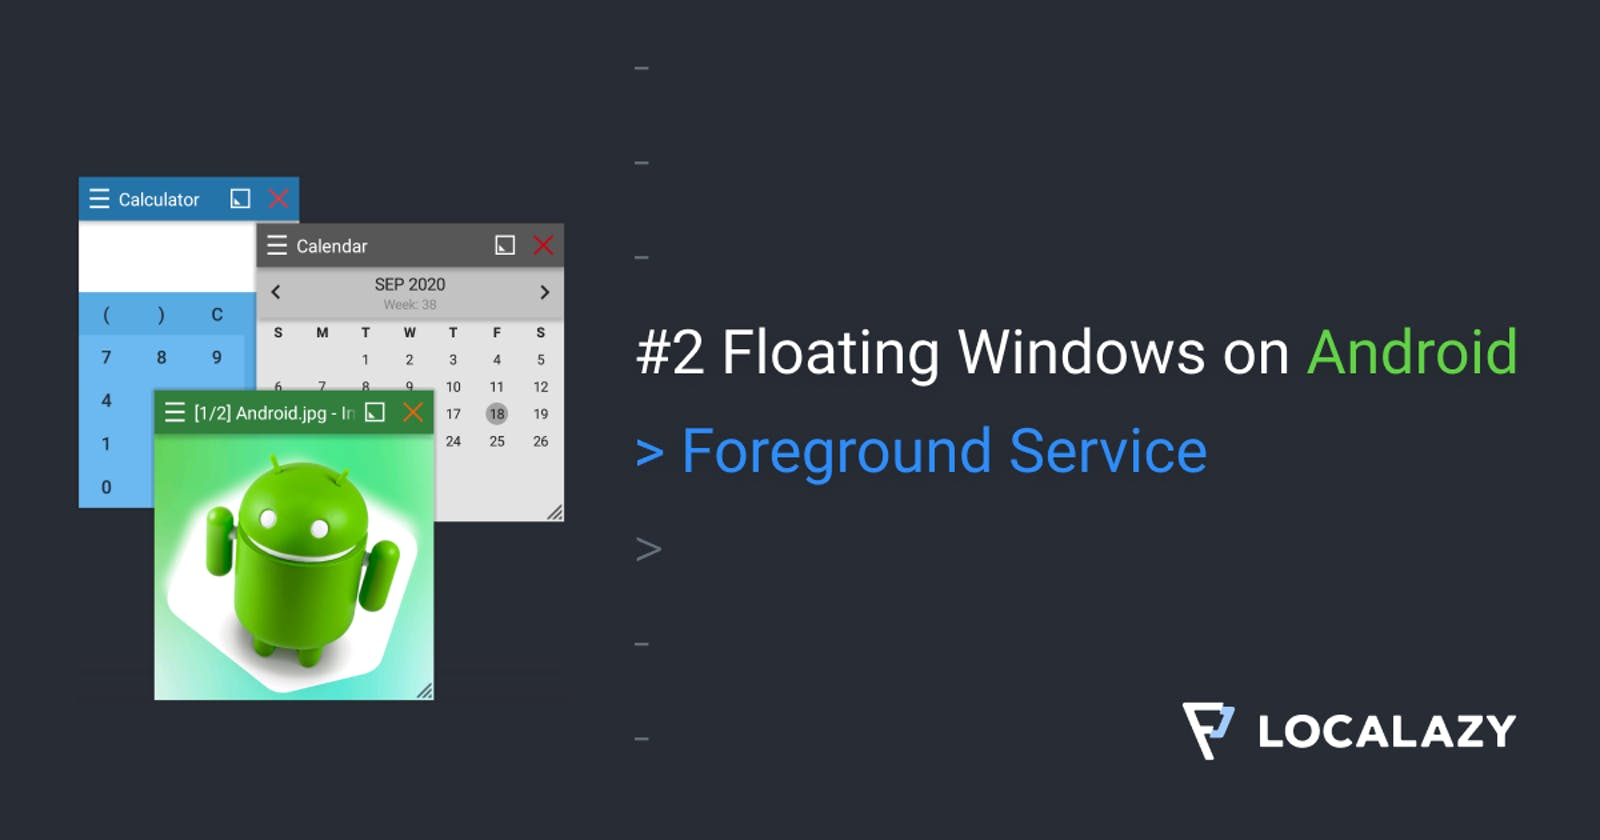 #2 Floating Windows on Android: Foreground Service